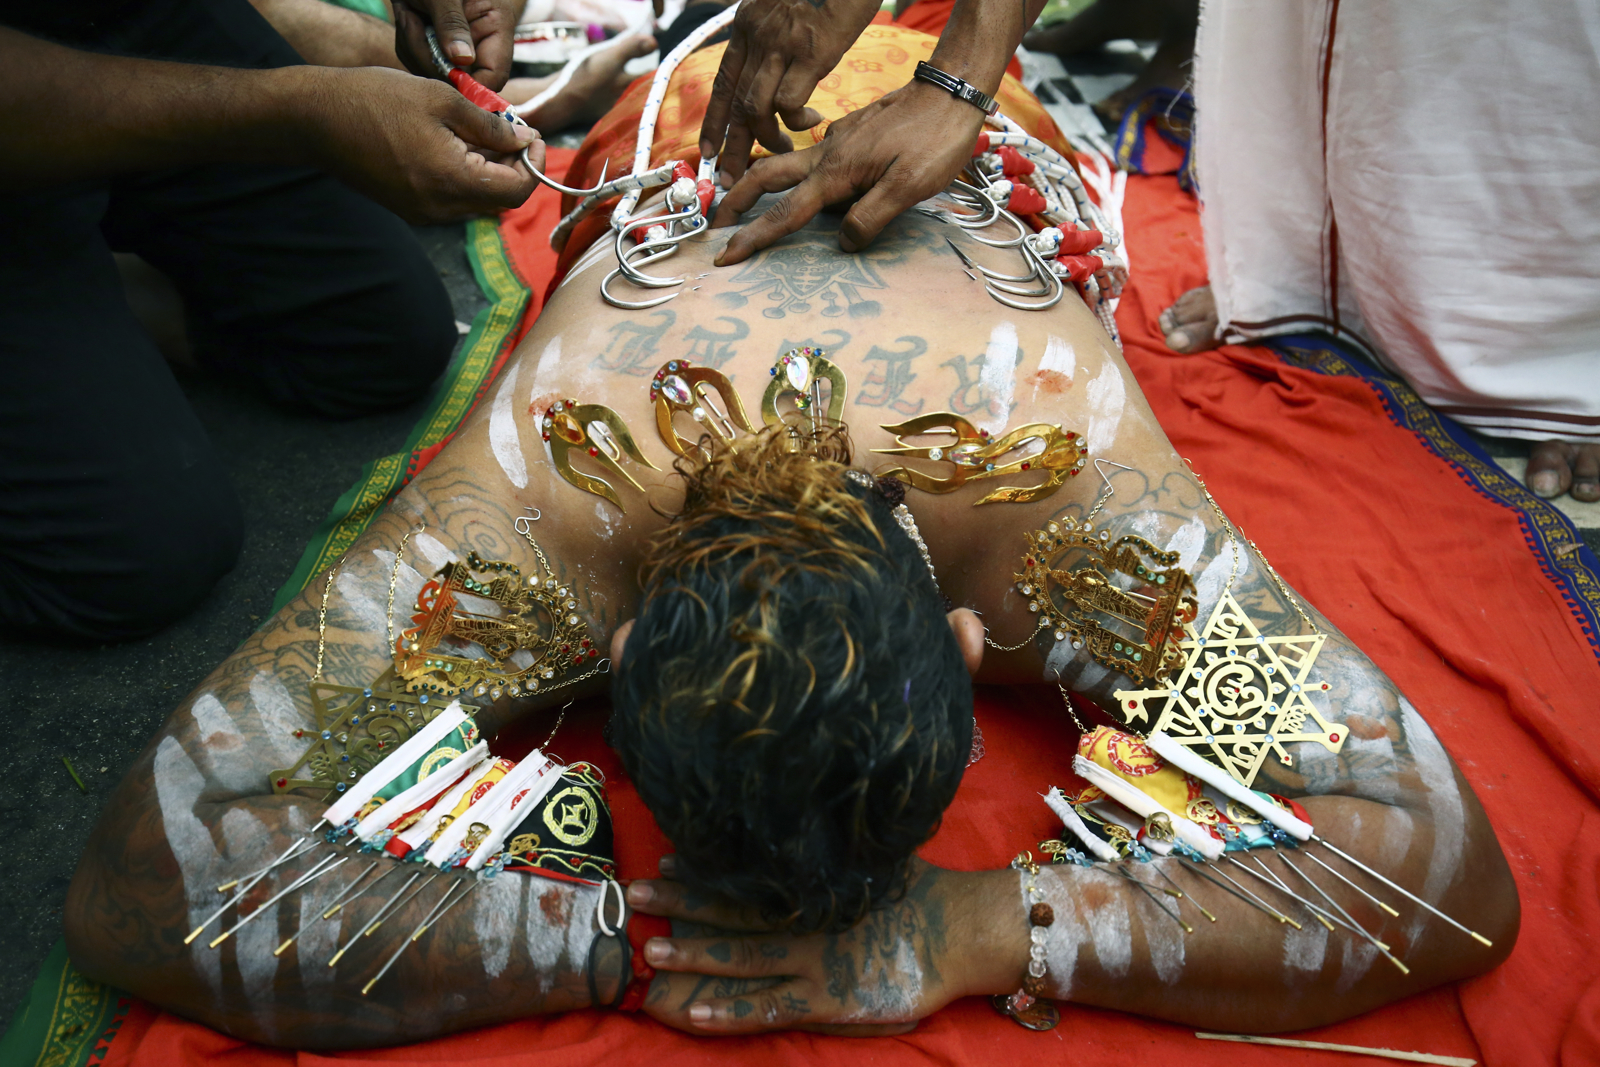 A devotee has his back pierced during the Thaipusam festival at the Sri Srinivasa Perumal Temple on February 9, 2017 in Singapore.